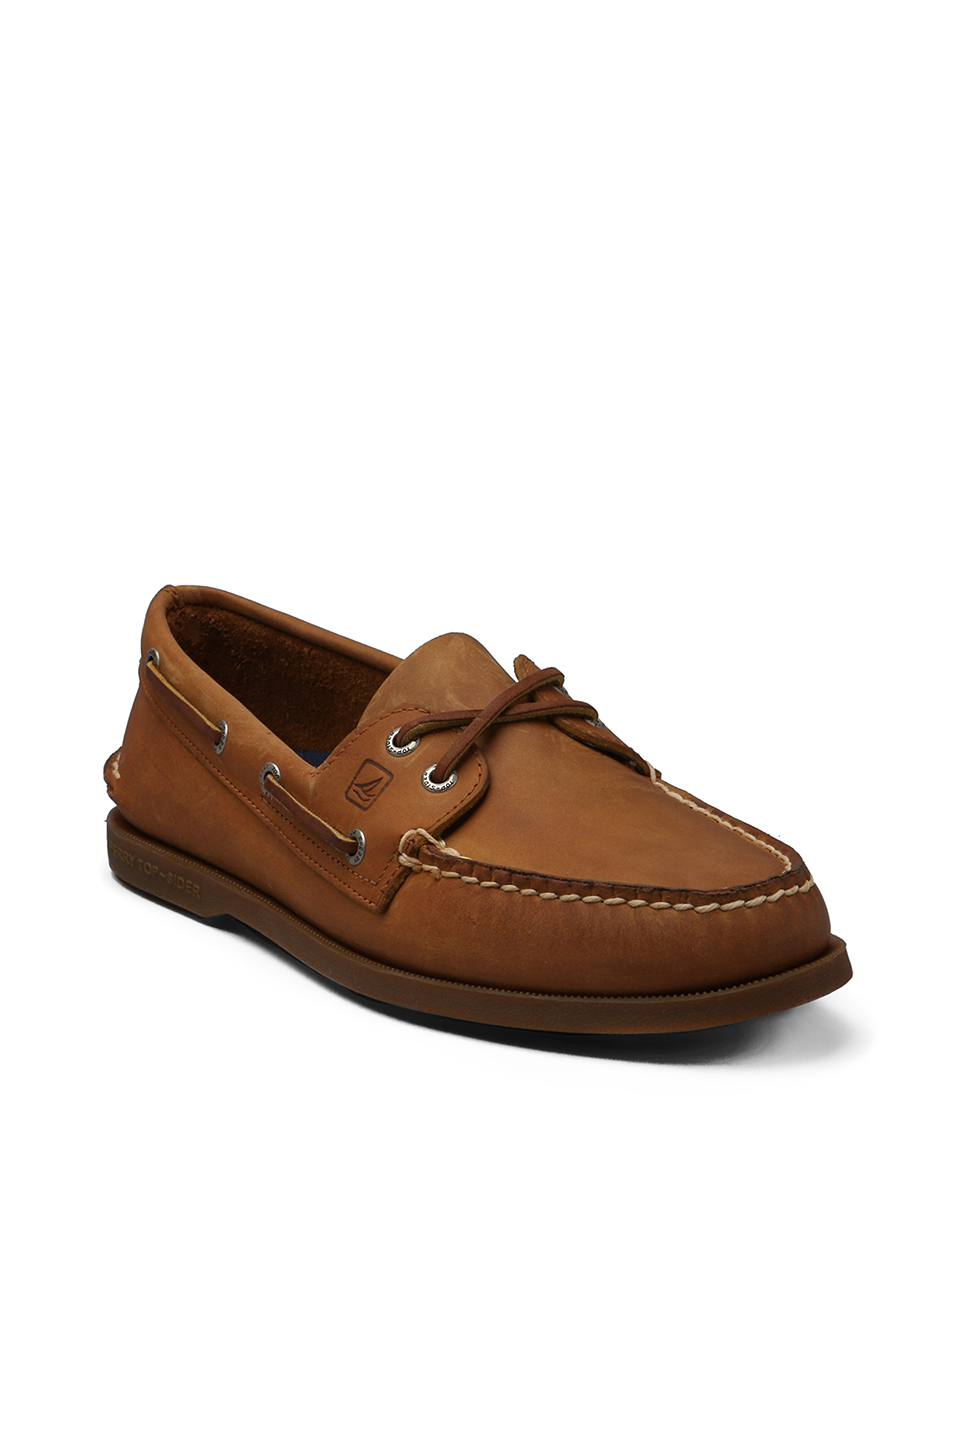 Sperry Top-Sider A/O in Sahara